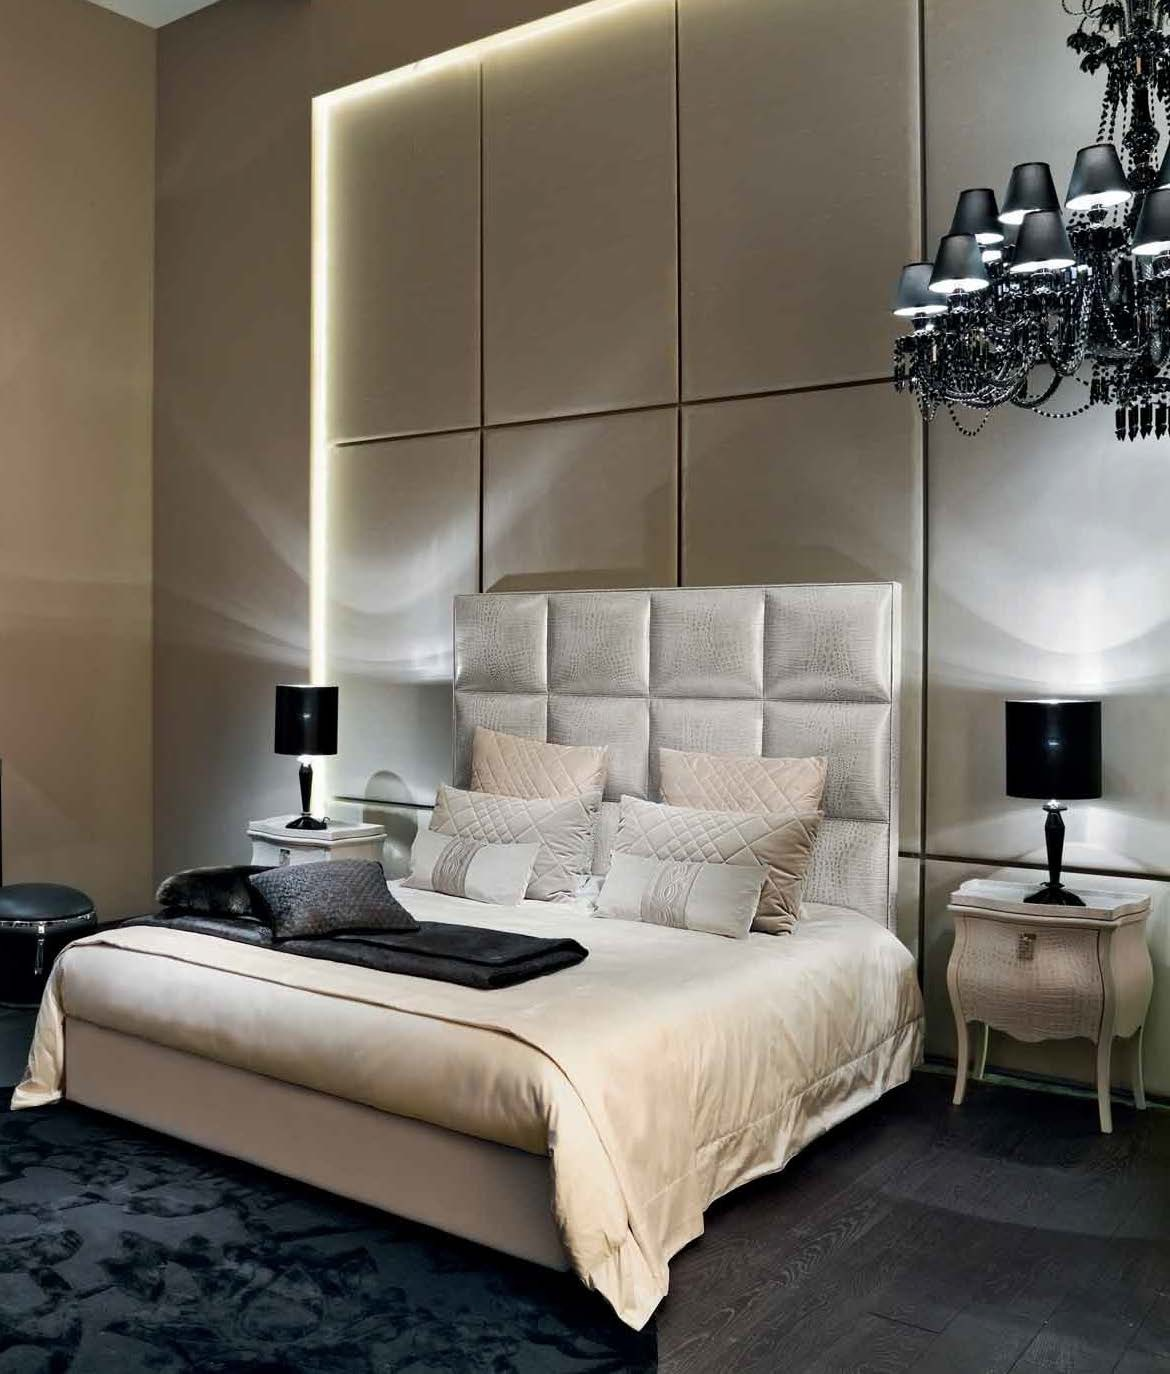 Double Bed With Upholstered Headboard Diamante Leather Upholstery Fendi Luxury Furniture Mr